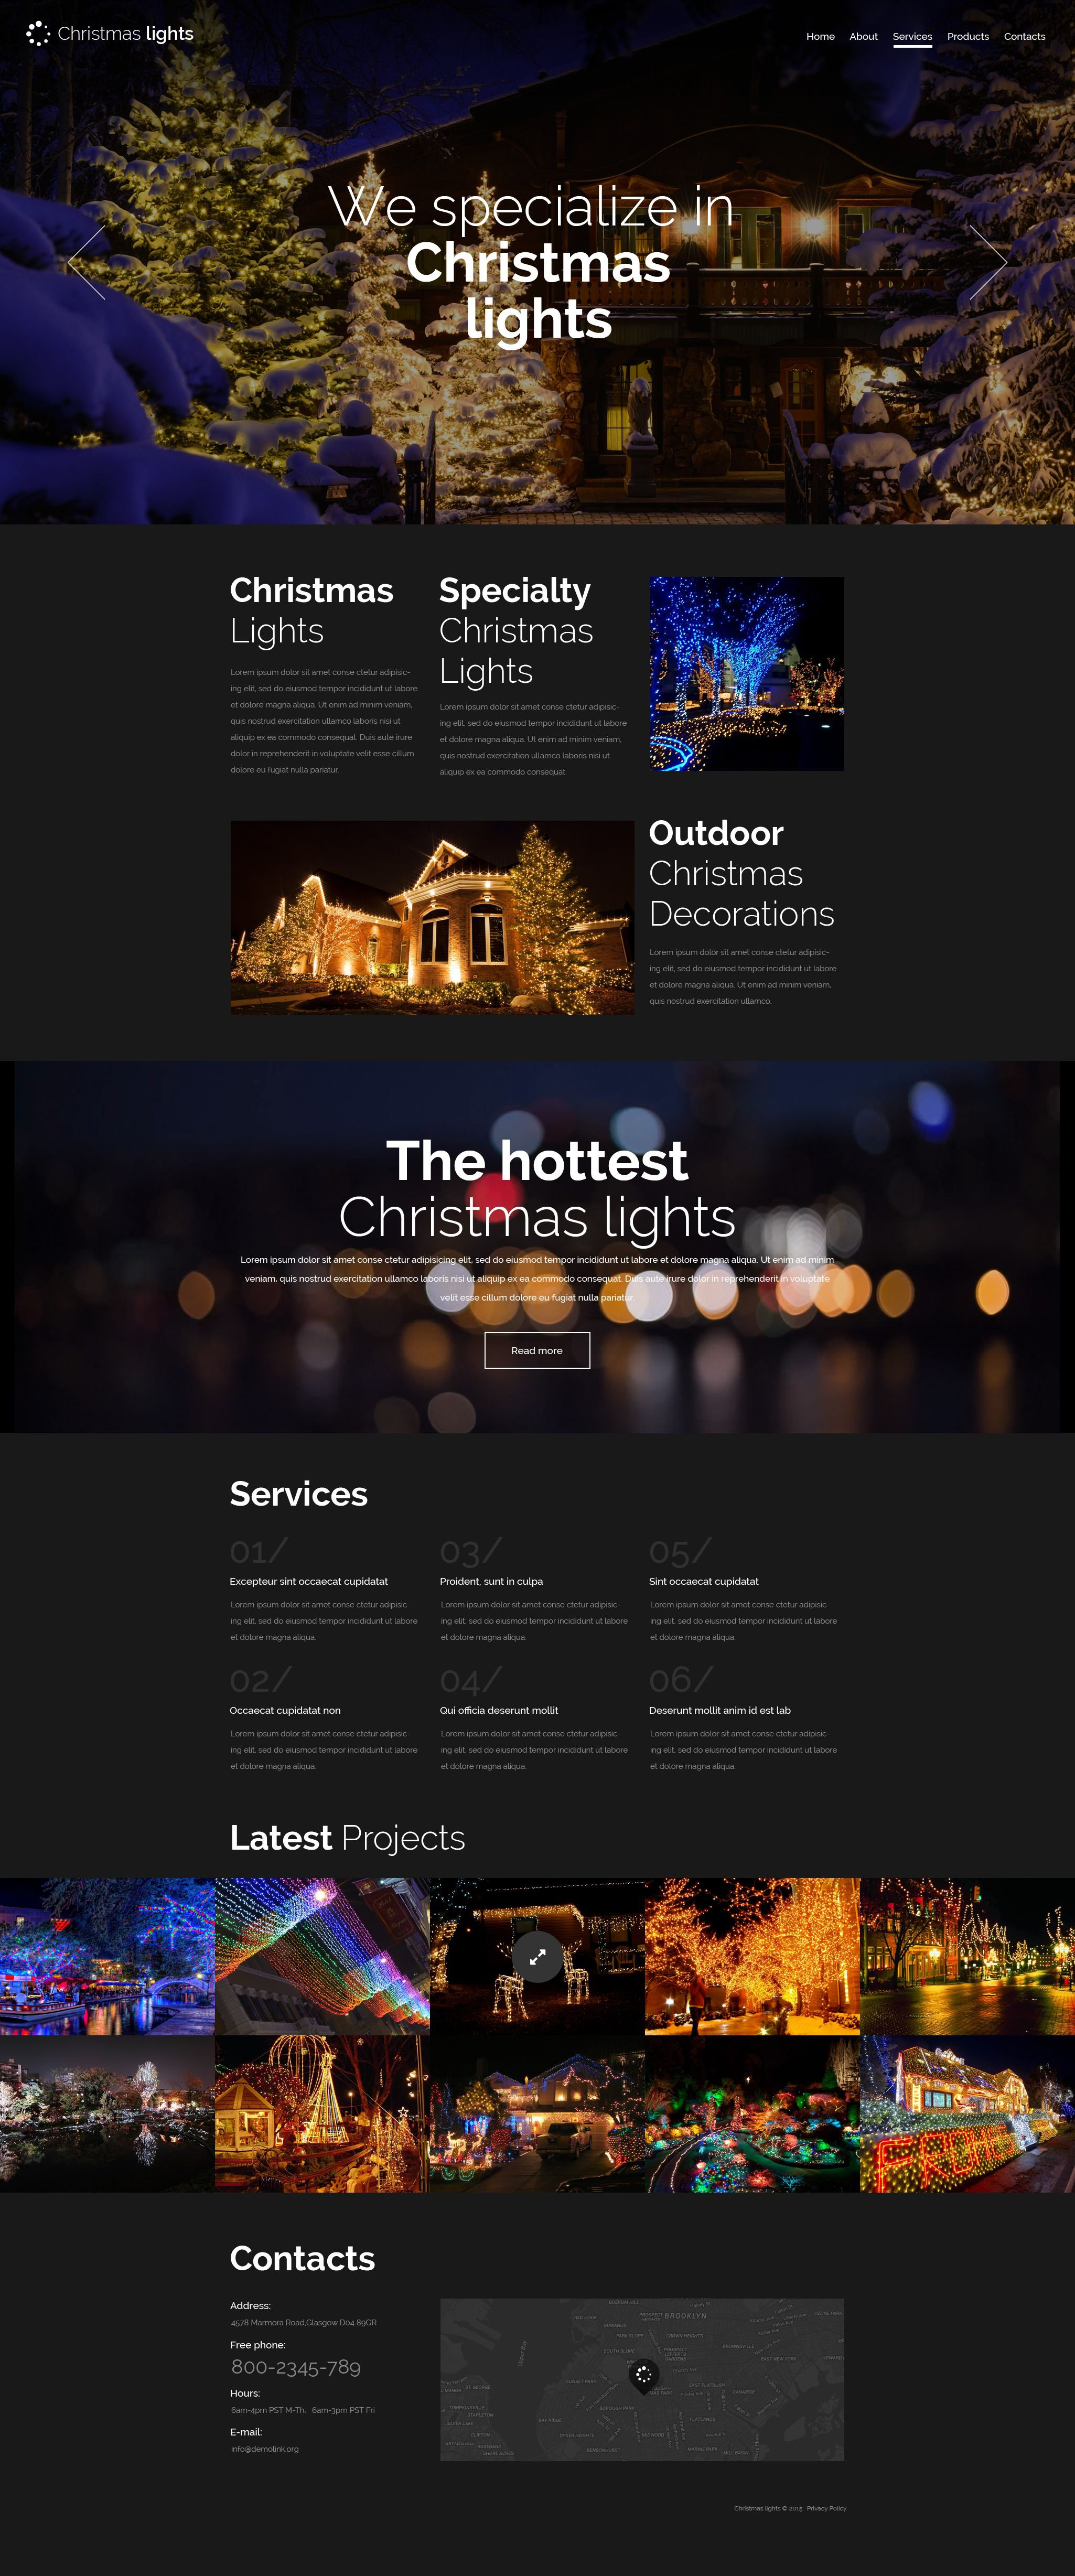 The Christmas Lights New Year Holiday Bootstrap Design 53814, one of the best website templates of its kind (most popular, christmas), also known as Christmas Lights New Year holiday website template, Santa Claus fir website template, tree website template, toys website template, games website template, ties website template, snowmen website template, baskets website template, candle website template, accessory website template, cards website template, socks website template, flower website template, jewelry website template, animal website template, frames website template, delivery website template, decoration website template, congratulation website template, joy website template, collection website template, holographic website template, train and related with Christmas Lights New Year holiday, Santa Claus fir, tree, toys, games, ties, snowmen, baskets, candle, accessory, cards, socks, flower, jewelry, animal, frames, delivery, decoration, congratulation, joy, collection, holographic, train, etc.